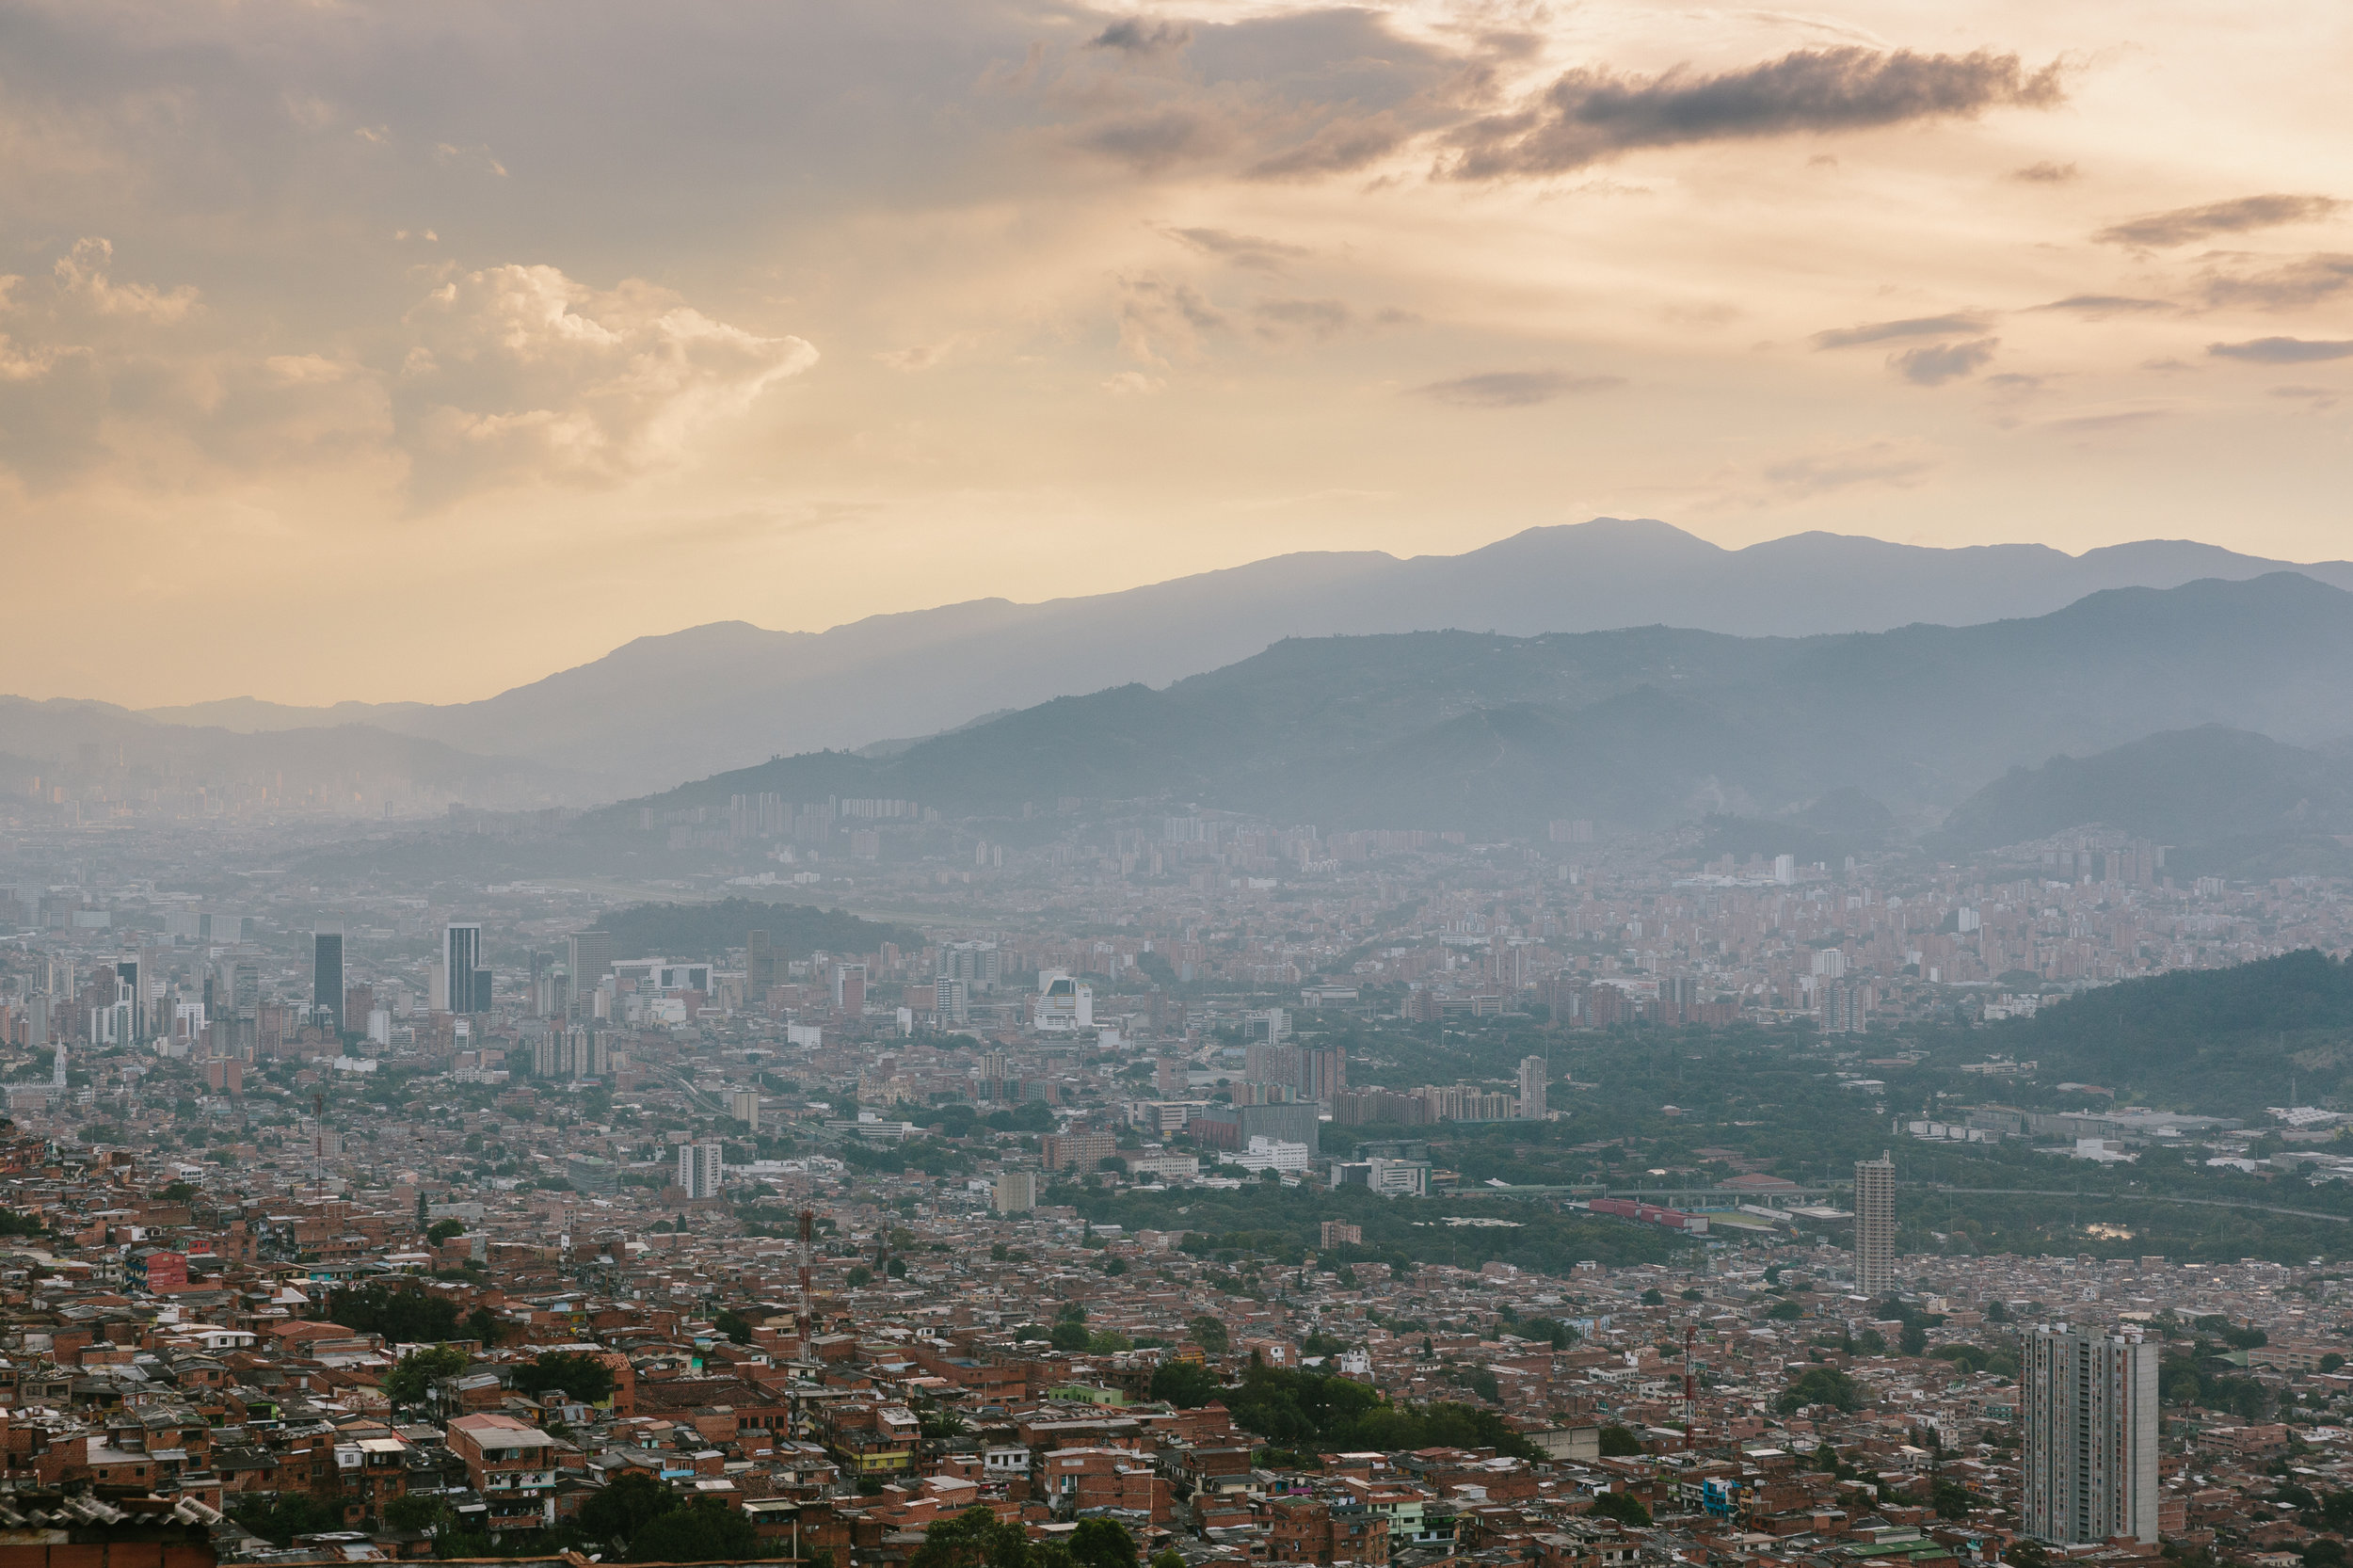 The stunning city of Medellin